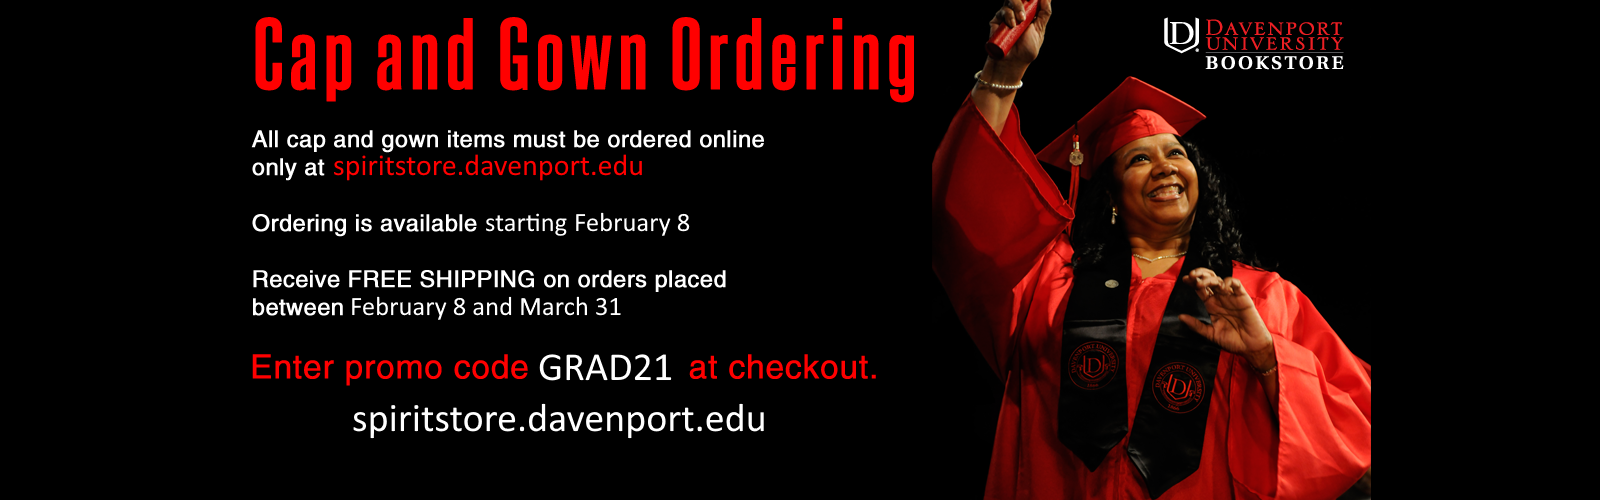 Buy grad gear here!